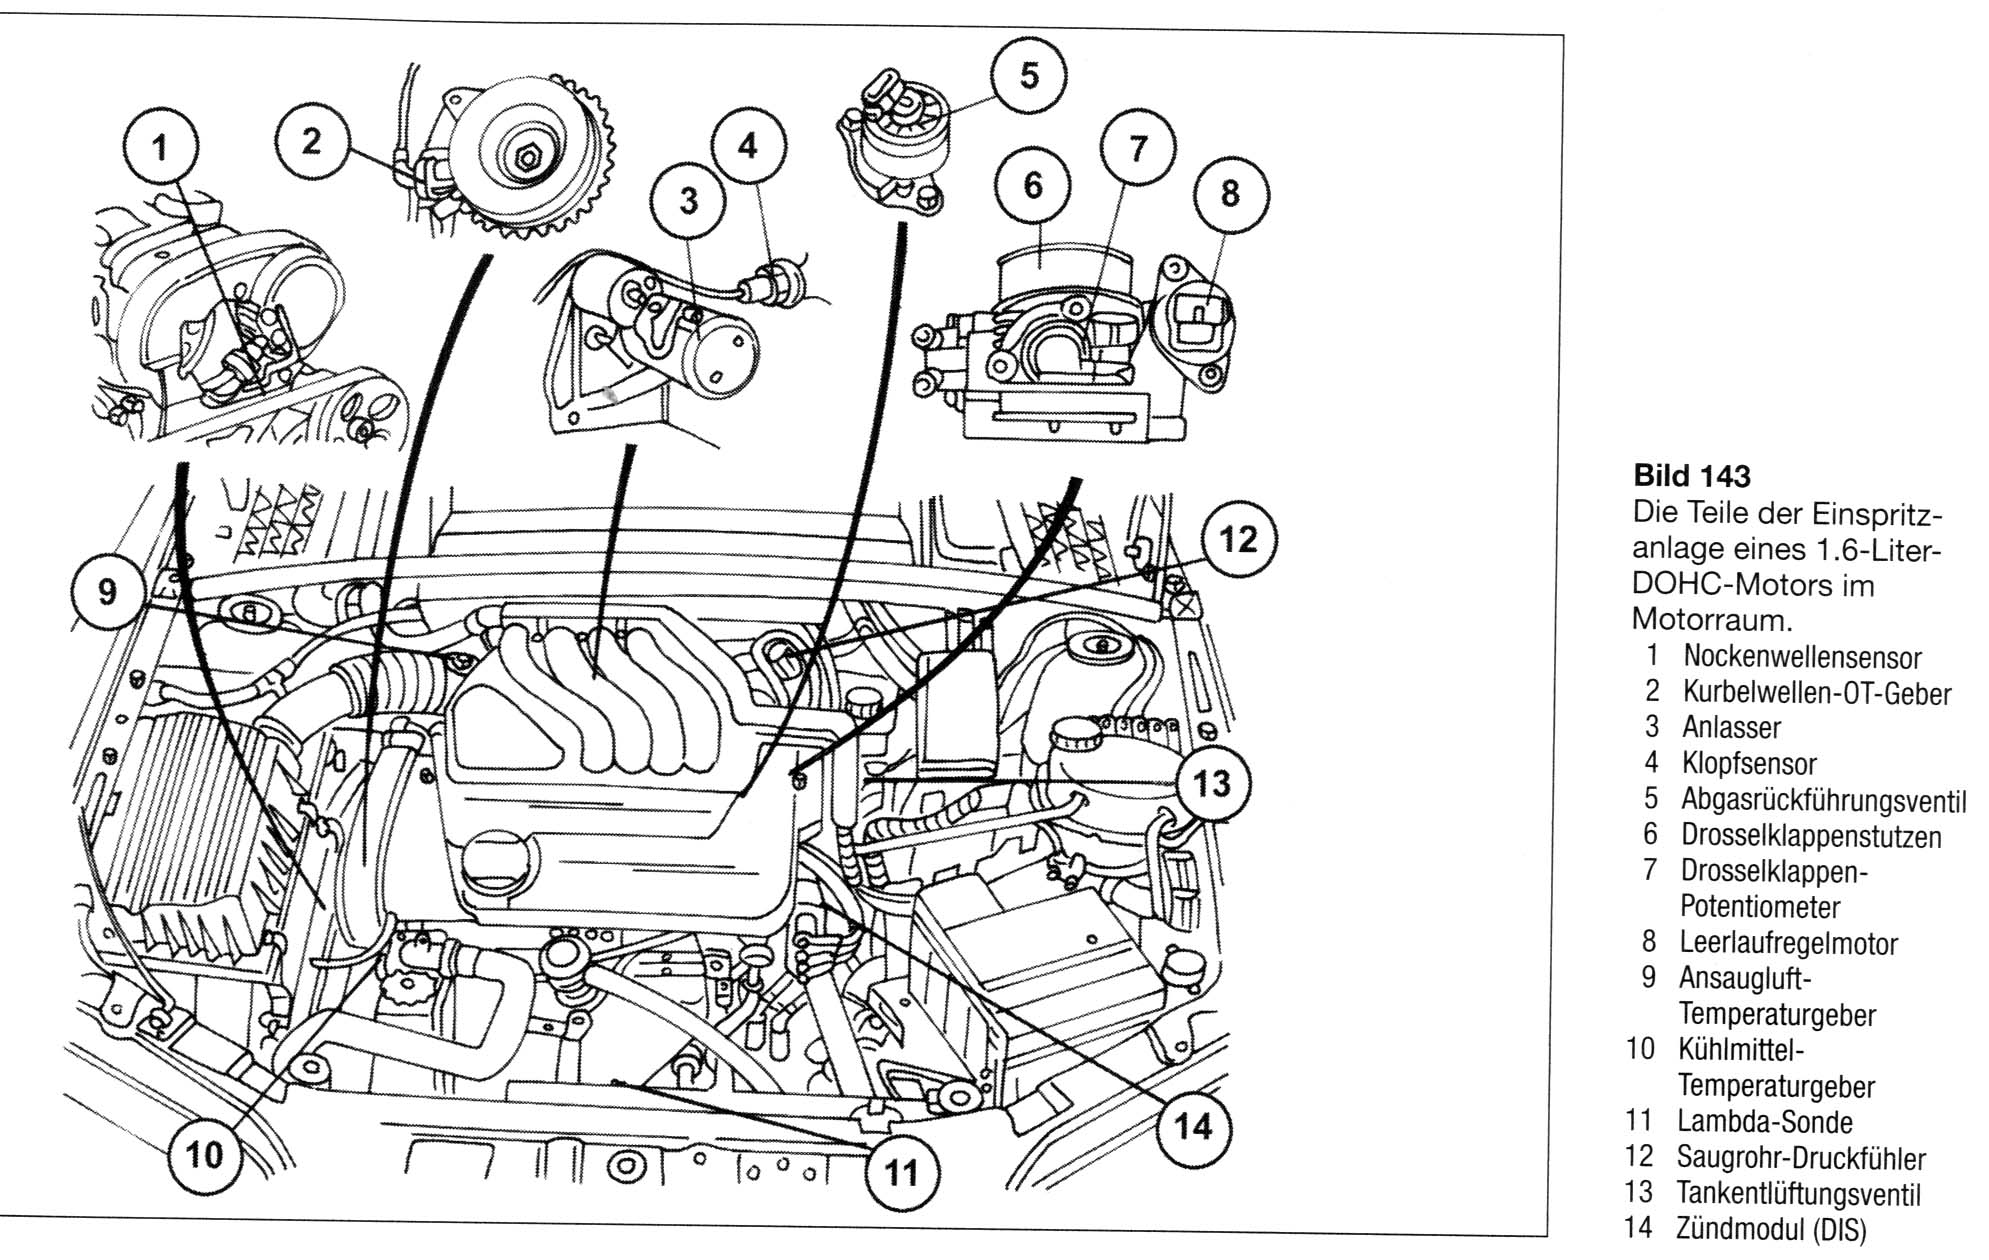 Honda Civic Fuse Box Diagrams 374430 moreover Fiat Engine Block Heater additionally 4352 2 Fragen Zu Meinem Vectra 1 6 also Discussion T26197 ds673942 moreover ShowAssembly. on saturn sl2 engine diagram